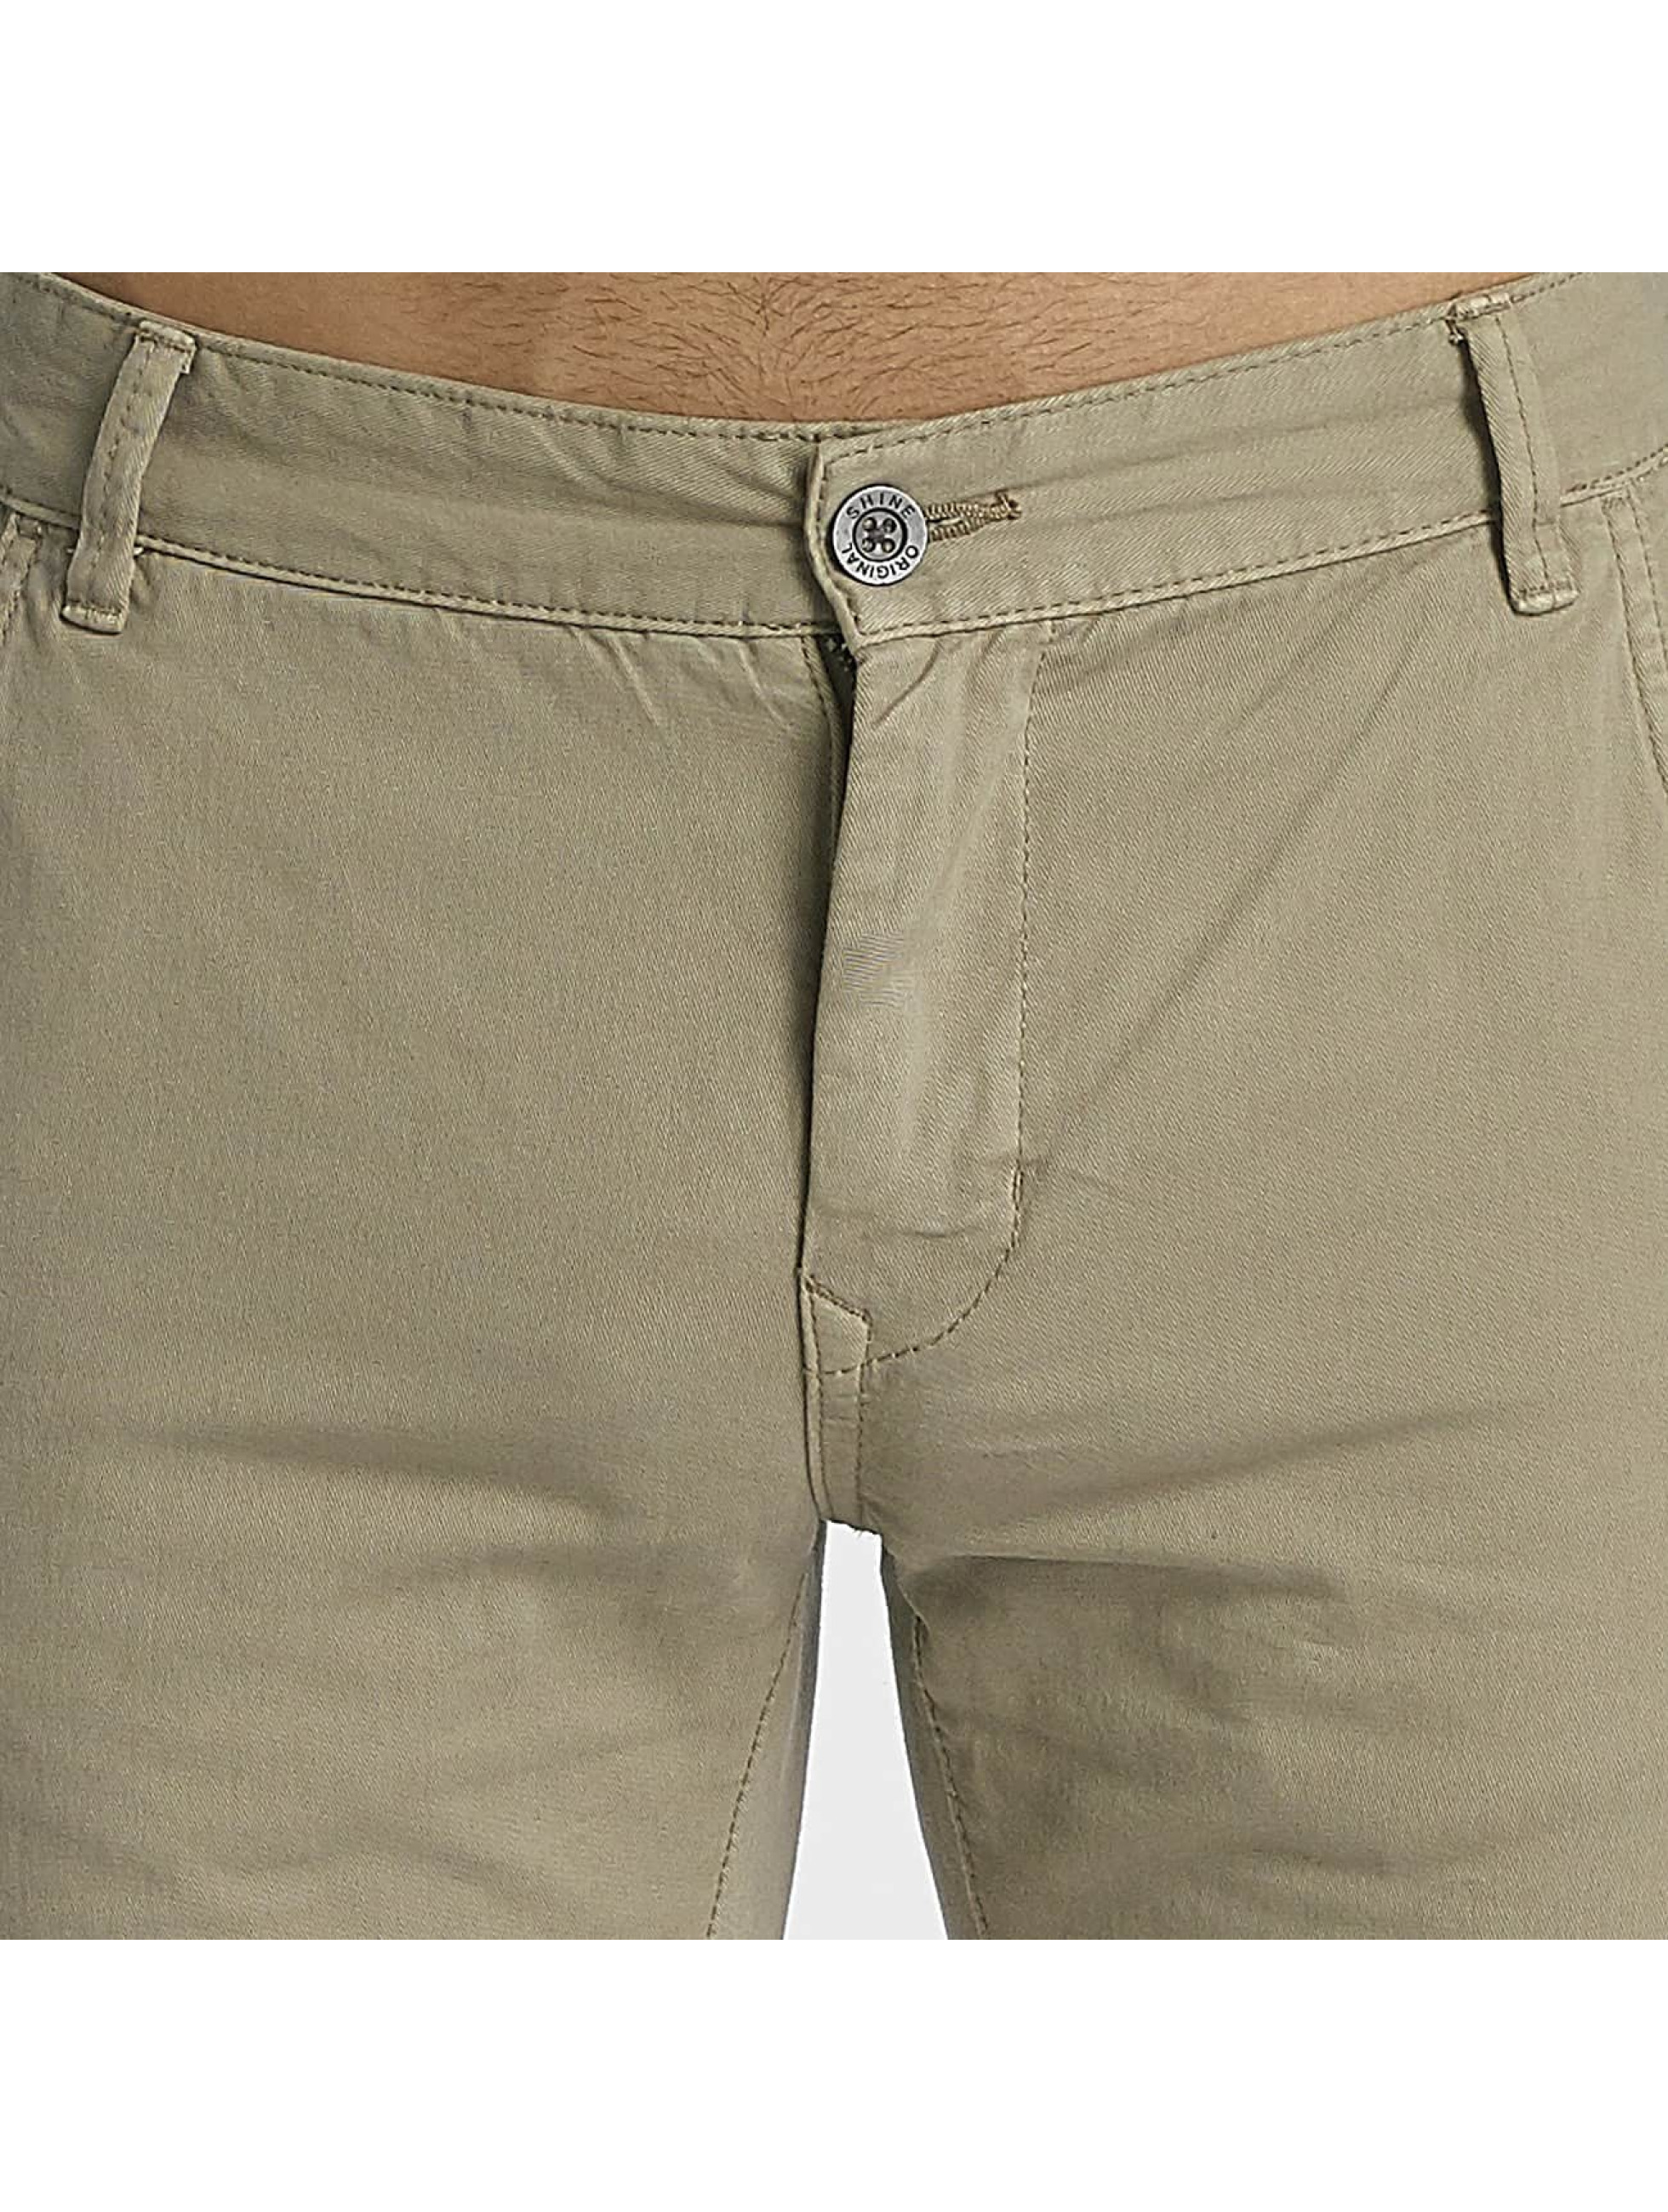 SHINE Original Chino Abdul beige